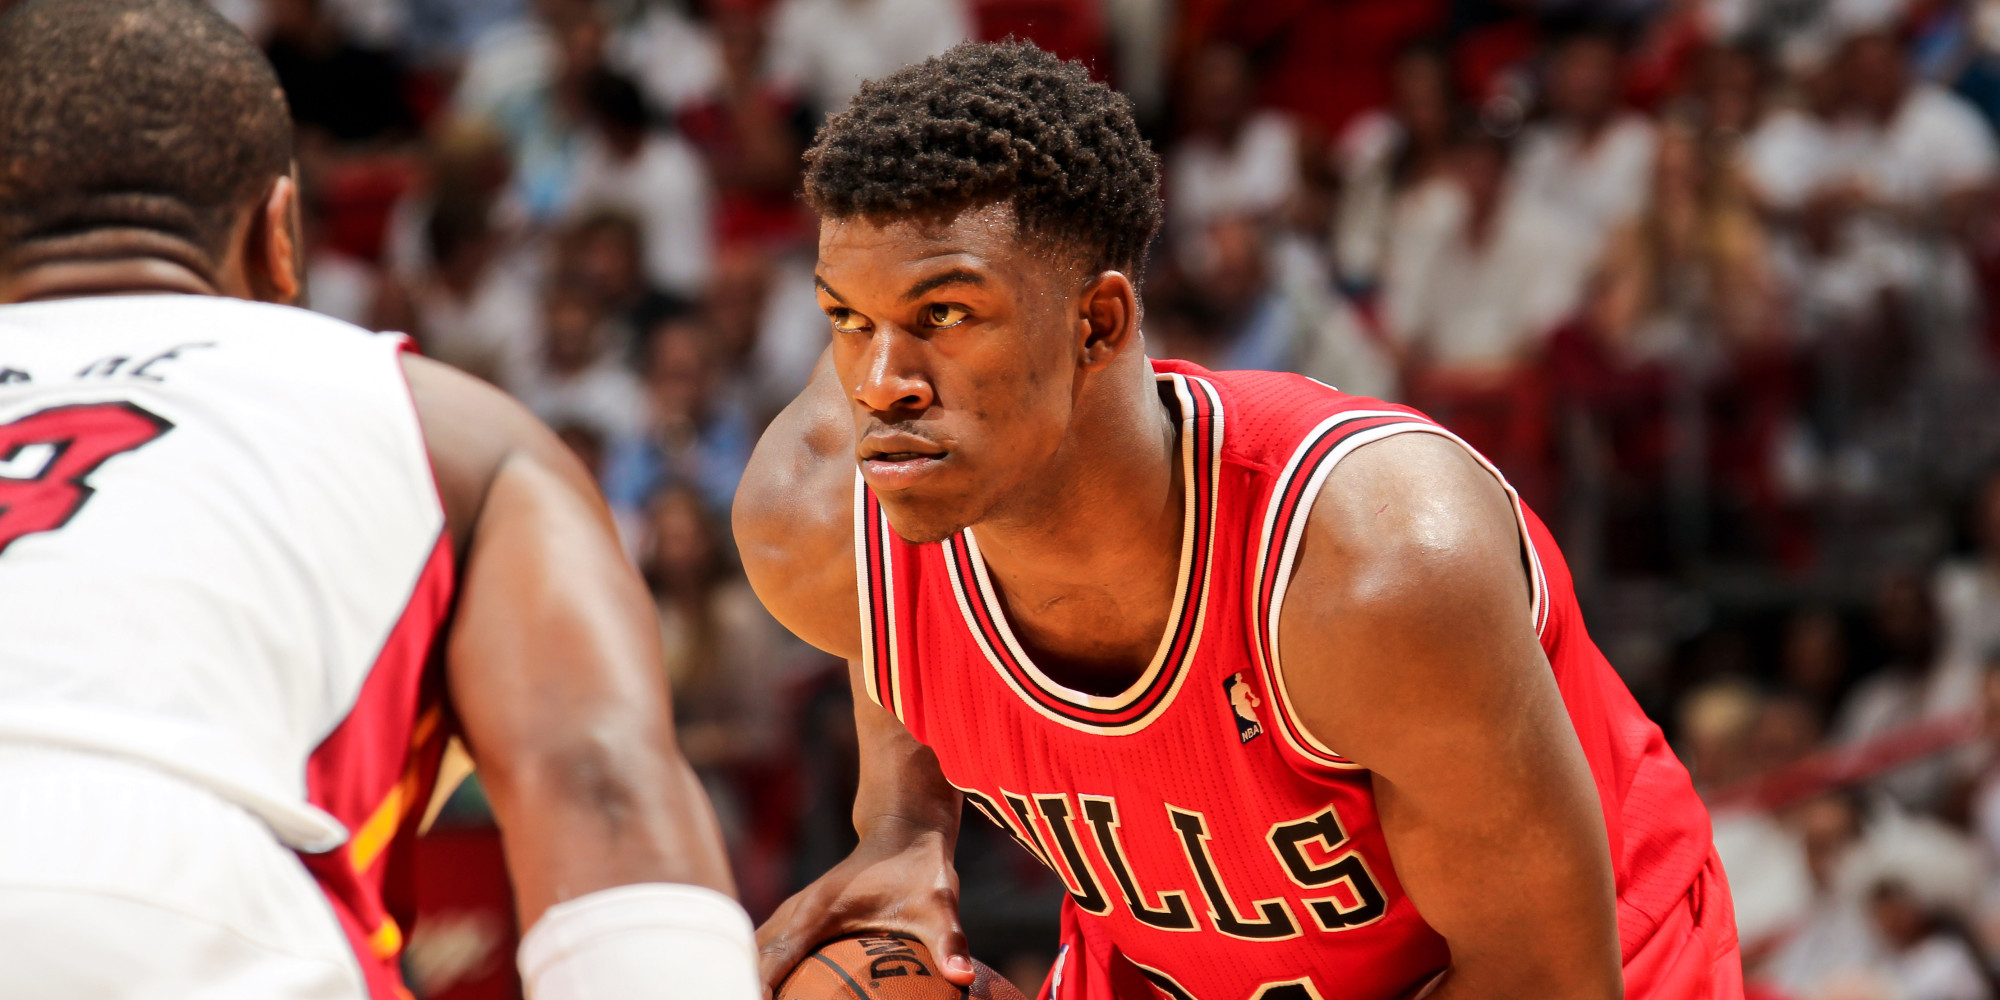 8. Jimmy Butler, Guard, Chicago Bulls - TheRichest